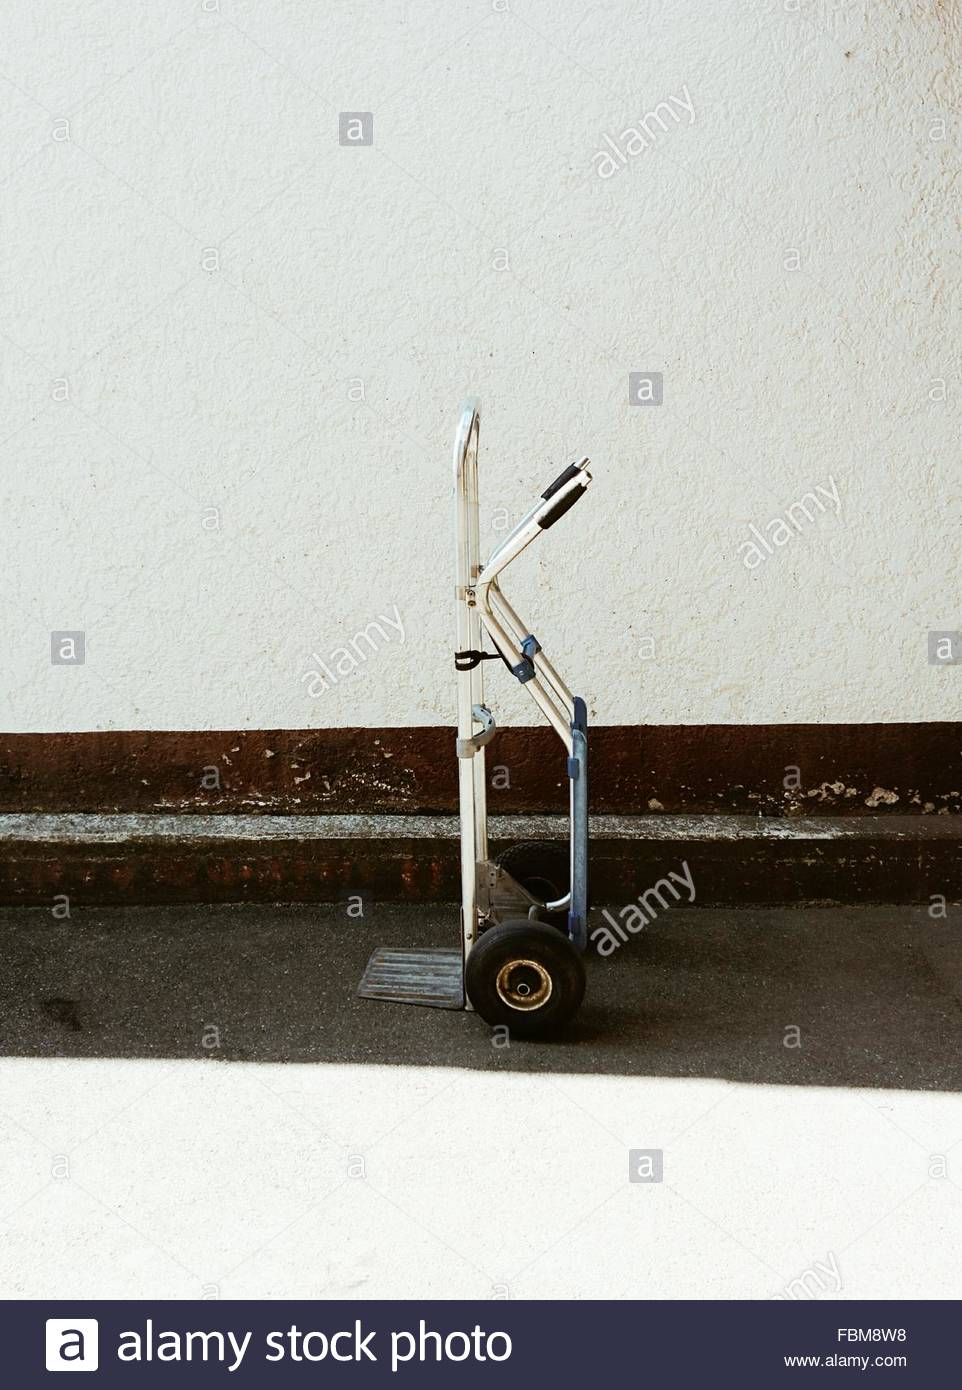 Side View Of Wheeled Object Against The Wall - Stock Image